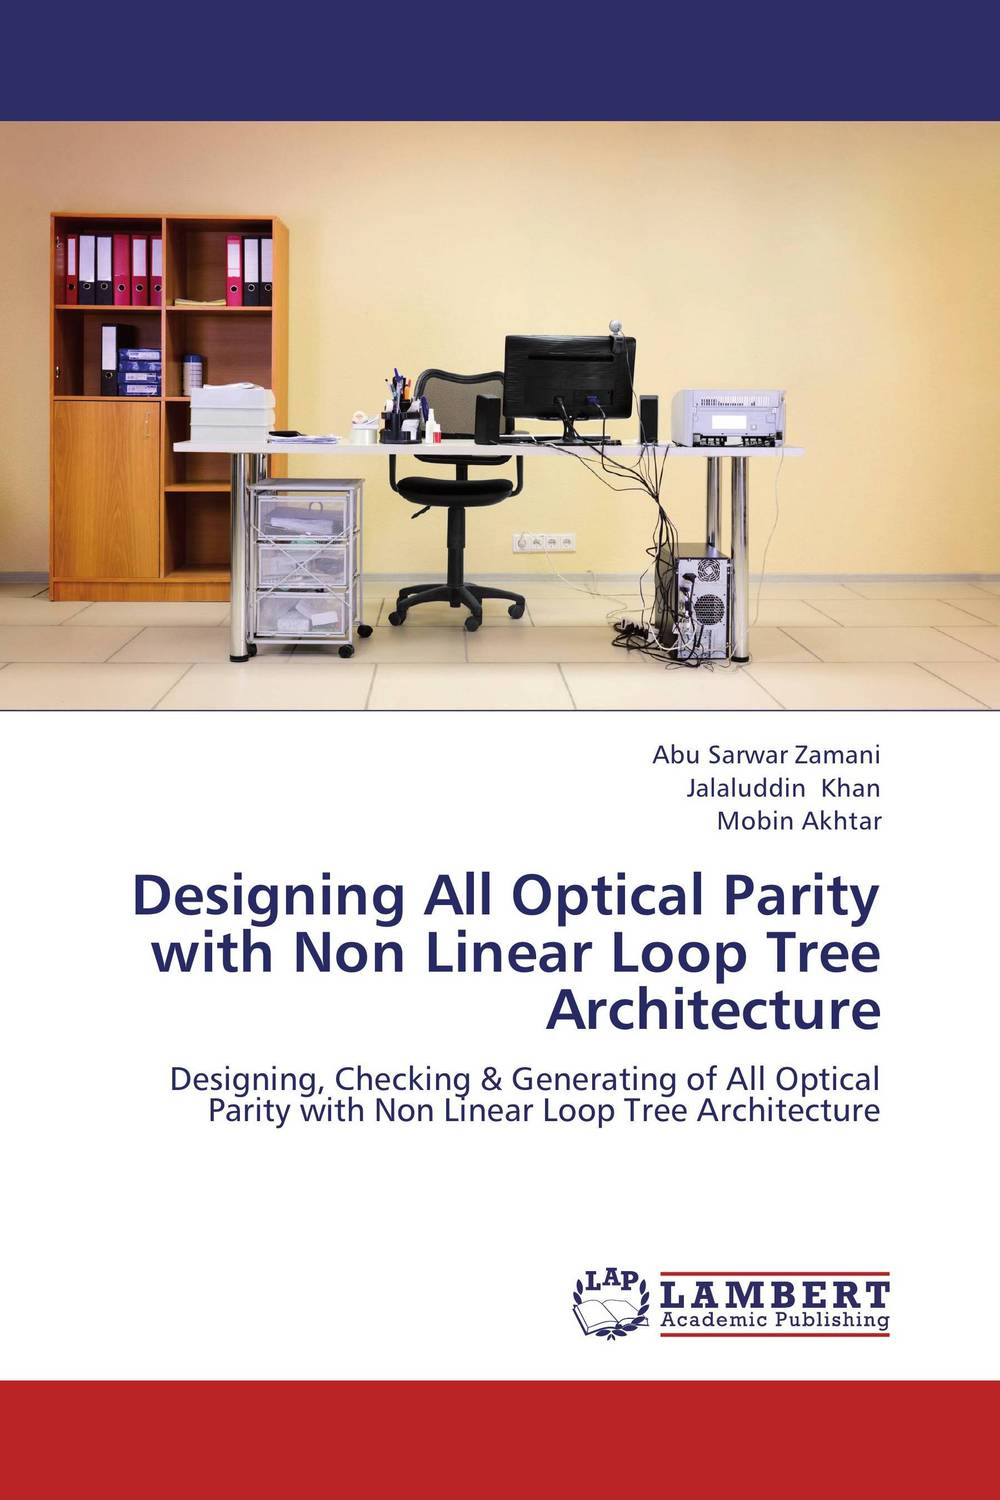 Designing All Optical Parity with Non Linear Loop Tree Architecture canada 1 3 000 000